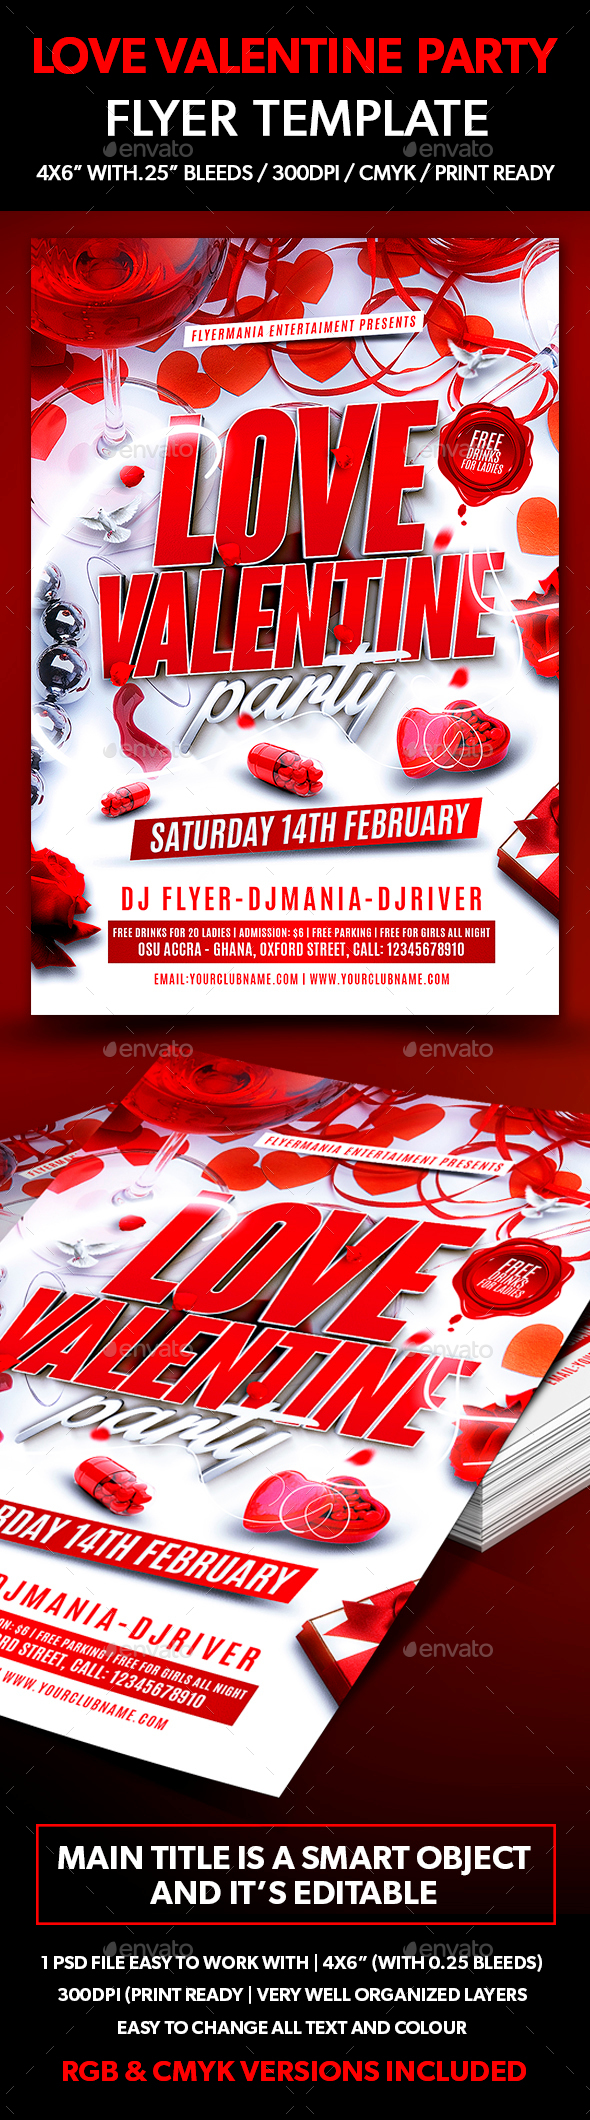 Love Valentine Party Flyer Template - Events Flyers